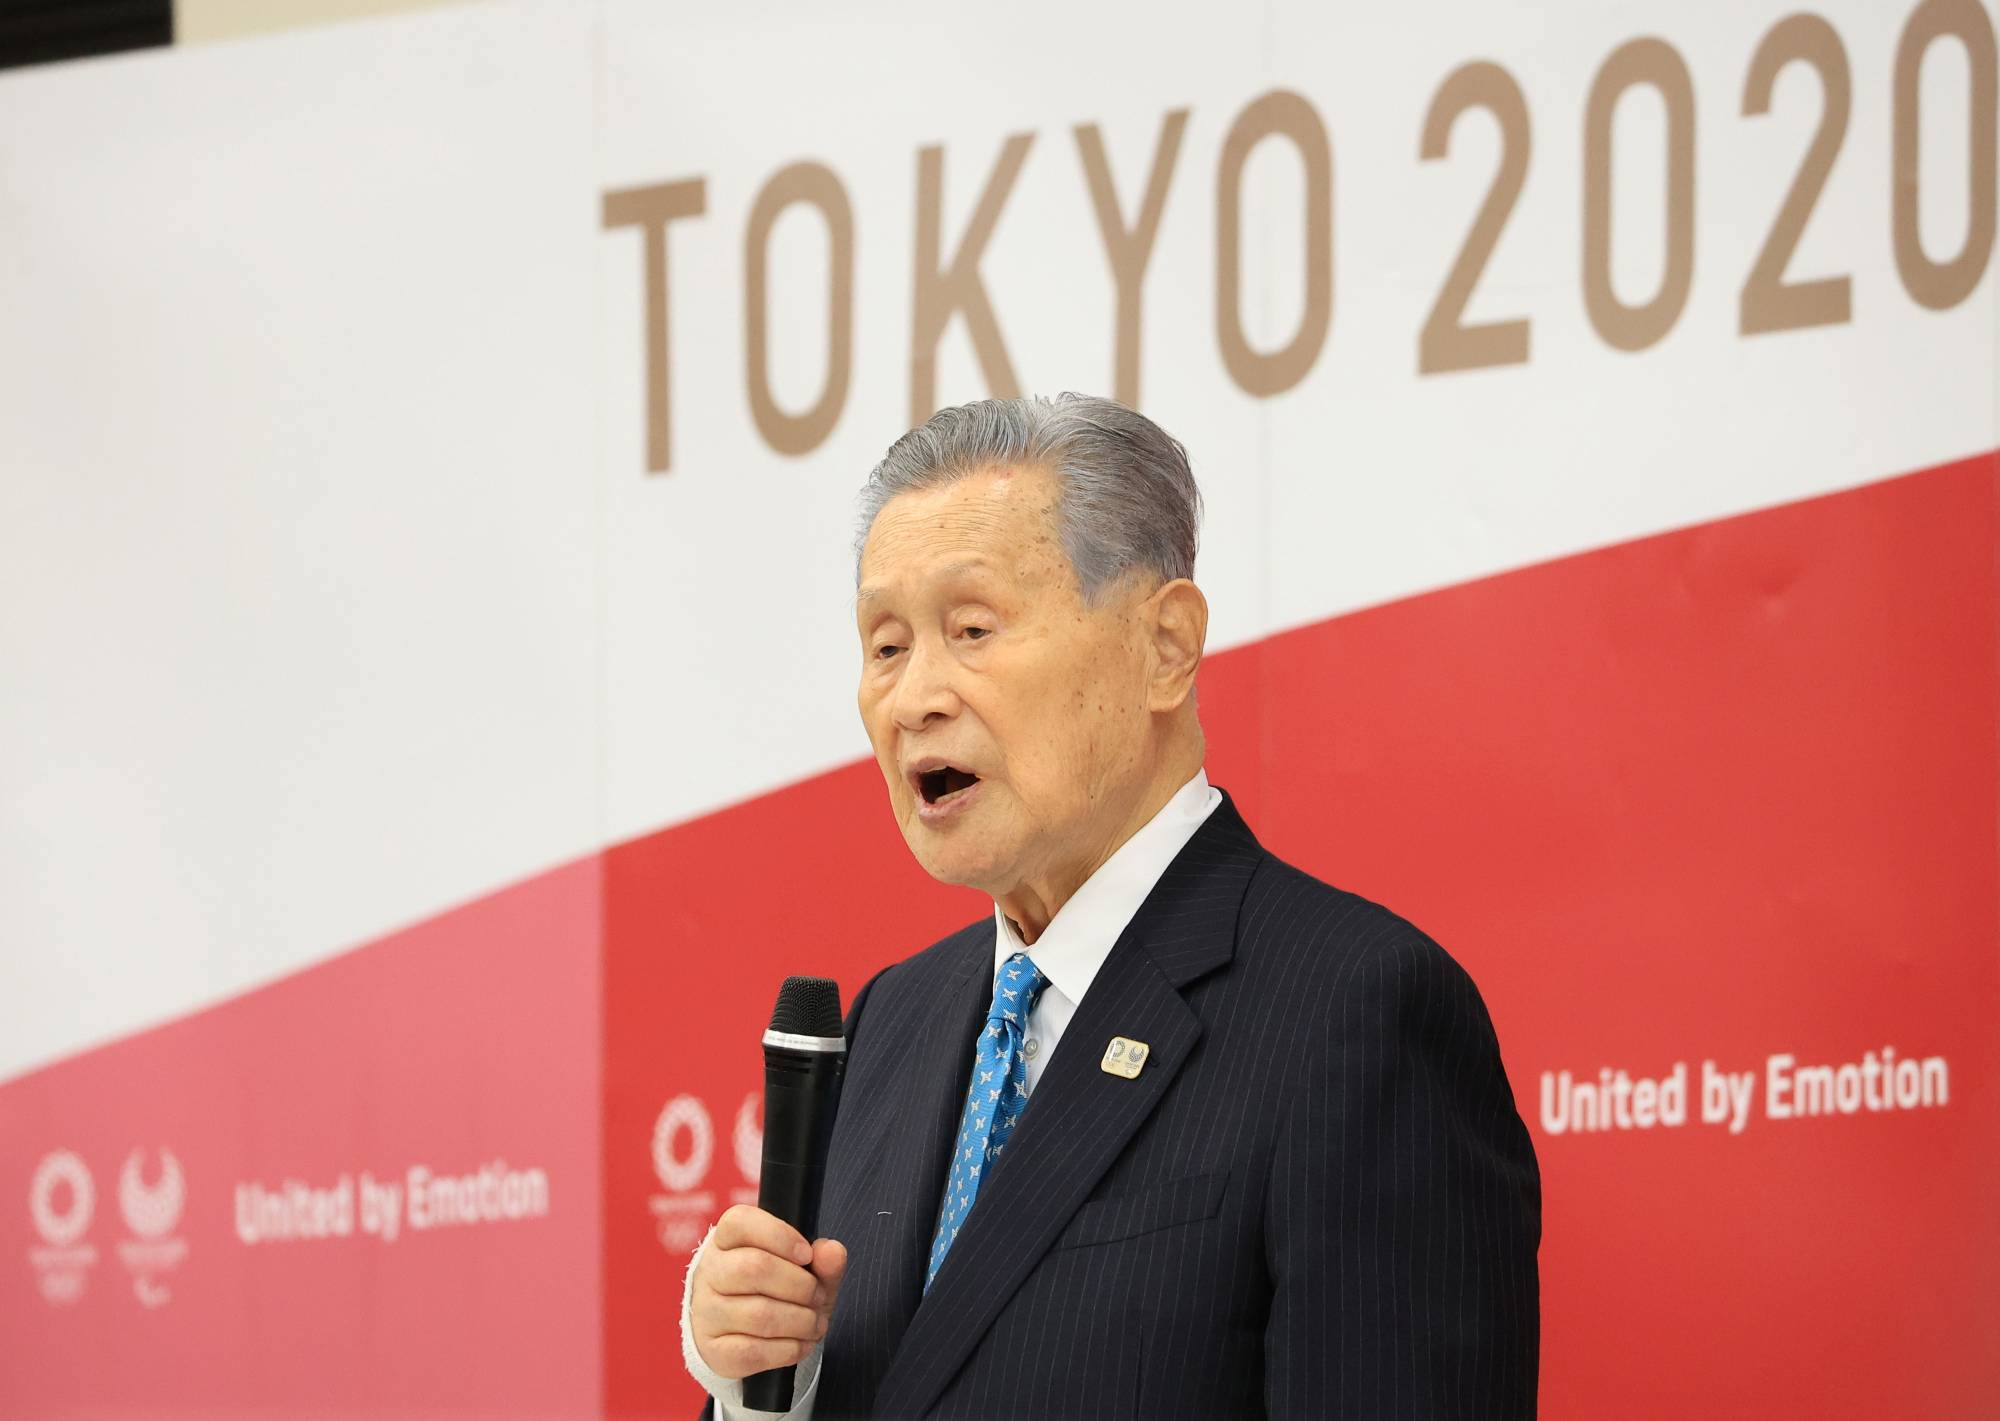 Tokyo 2020 organizers add to speculation over comeback for scandal-hit Yoshiro Mori